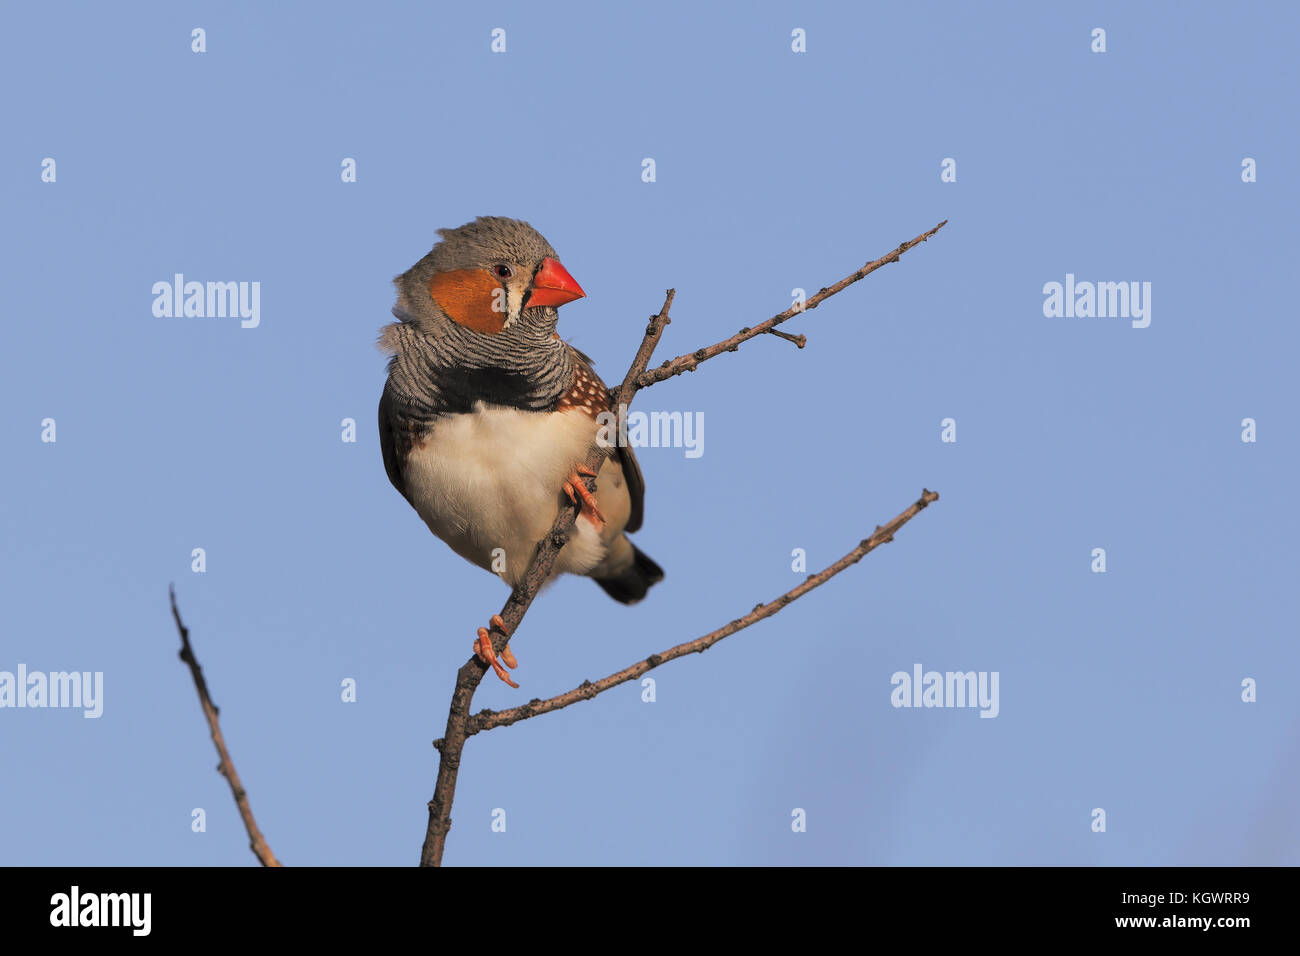 Zebra Finch perched in the Western Australia desert - Stock Image